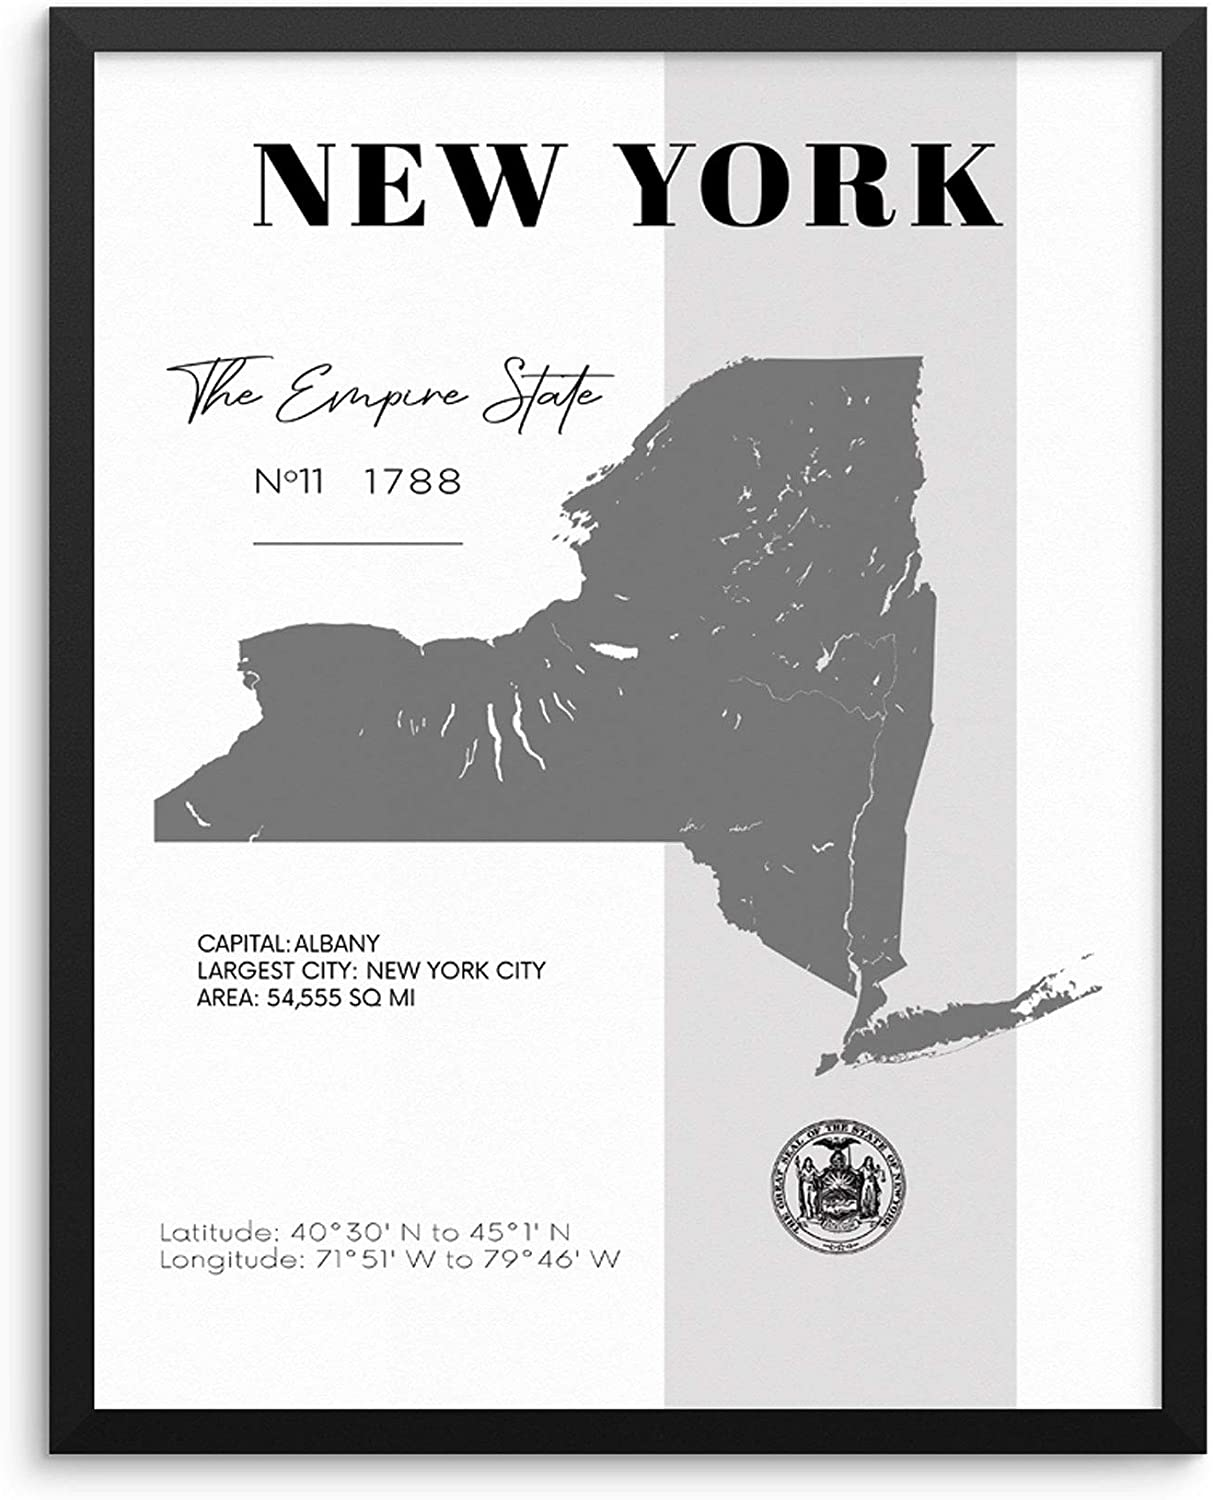 New York State Map Poster With Demographics Minimalist Home Decor Travel  Art Print 20x20 UNFRAMED Trendy Artwork for Bedroom Living Room Entryway ...